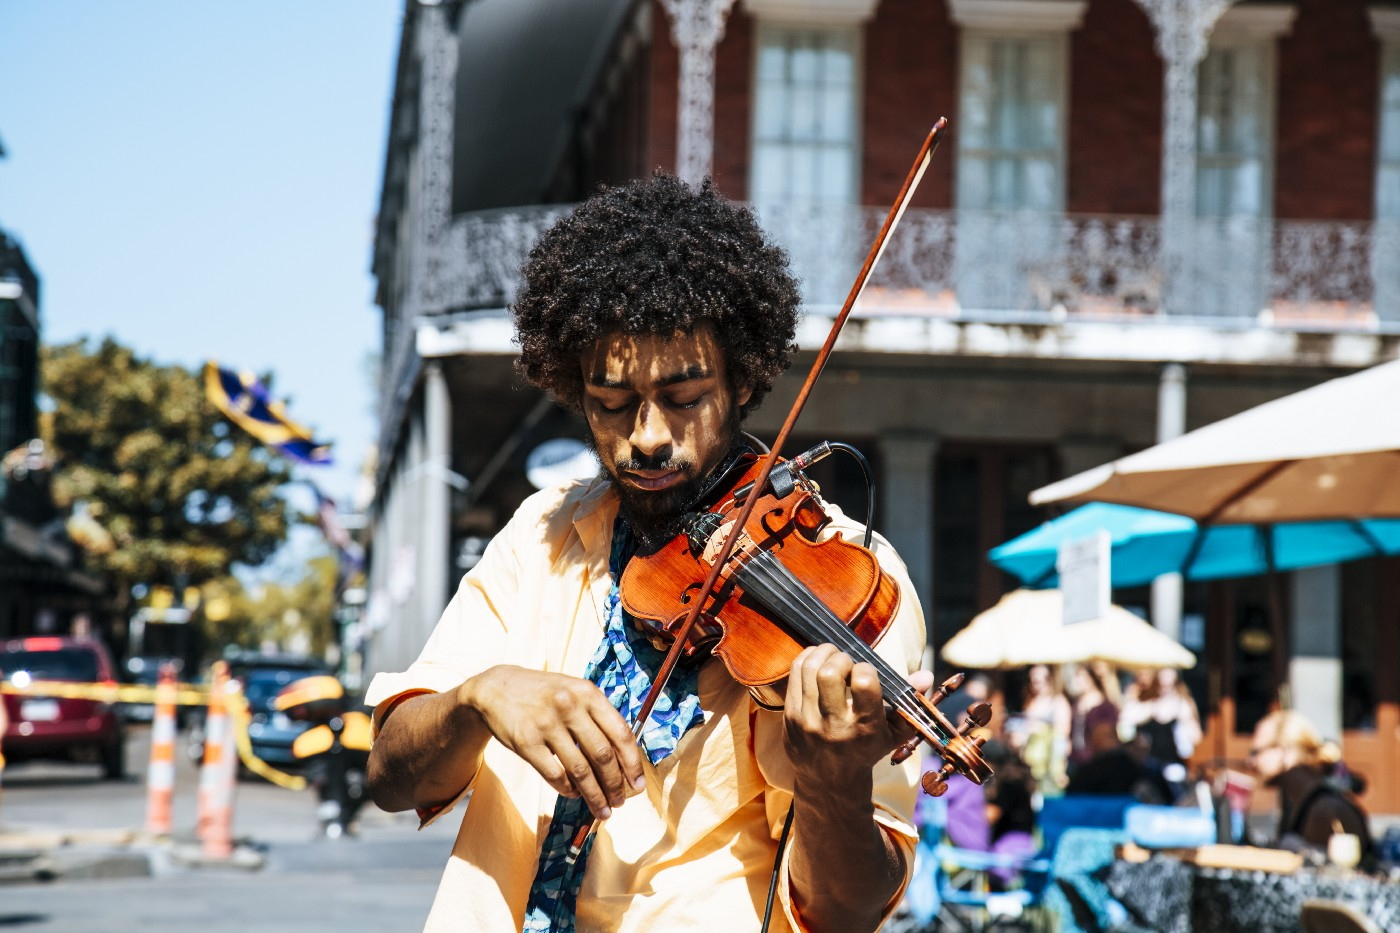 Man plays violin on street corner